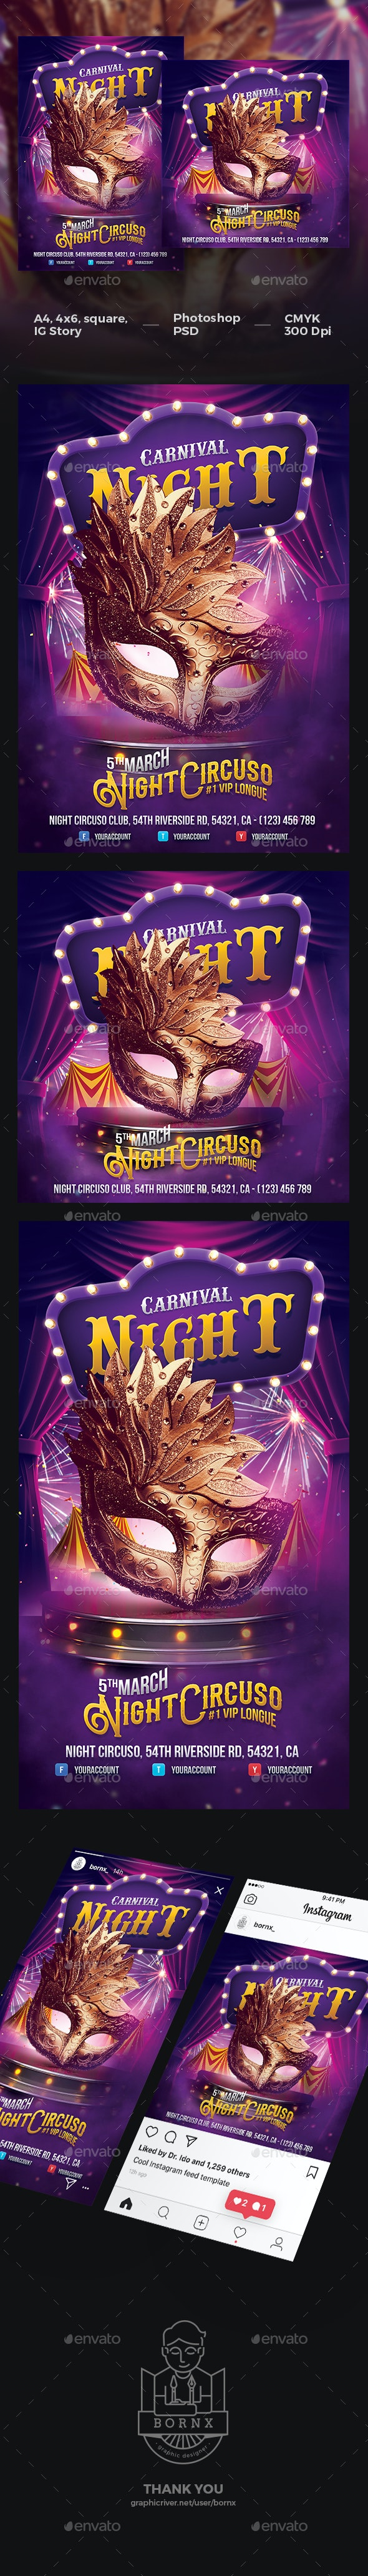 Mardi Gras Carnival Flyer - Events Flyers